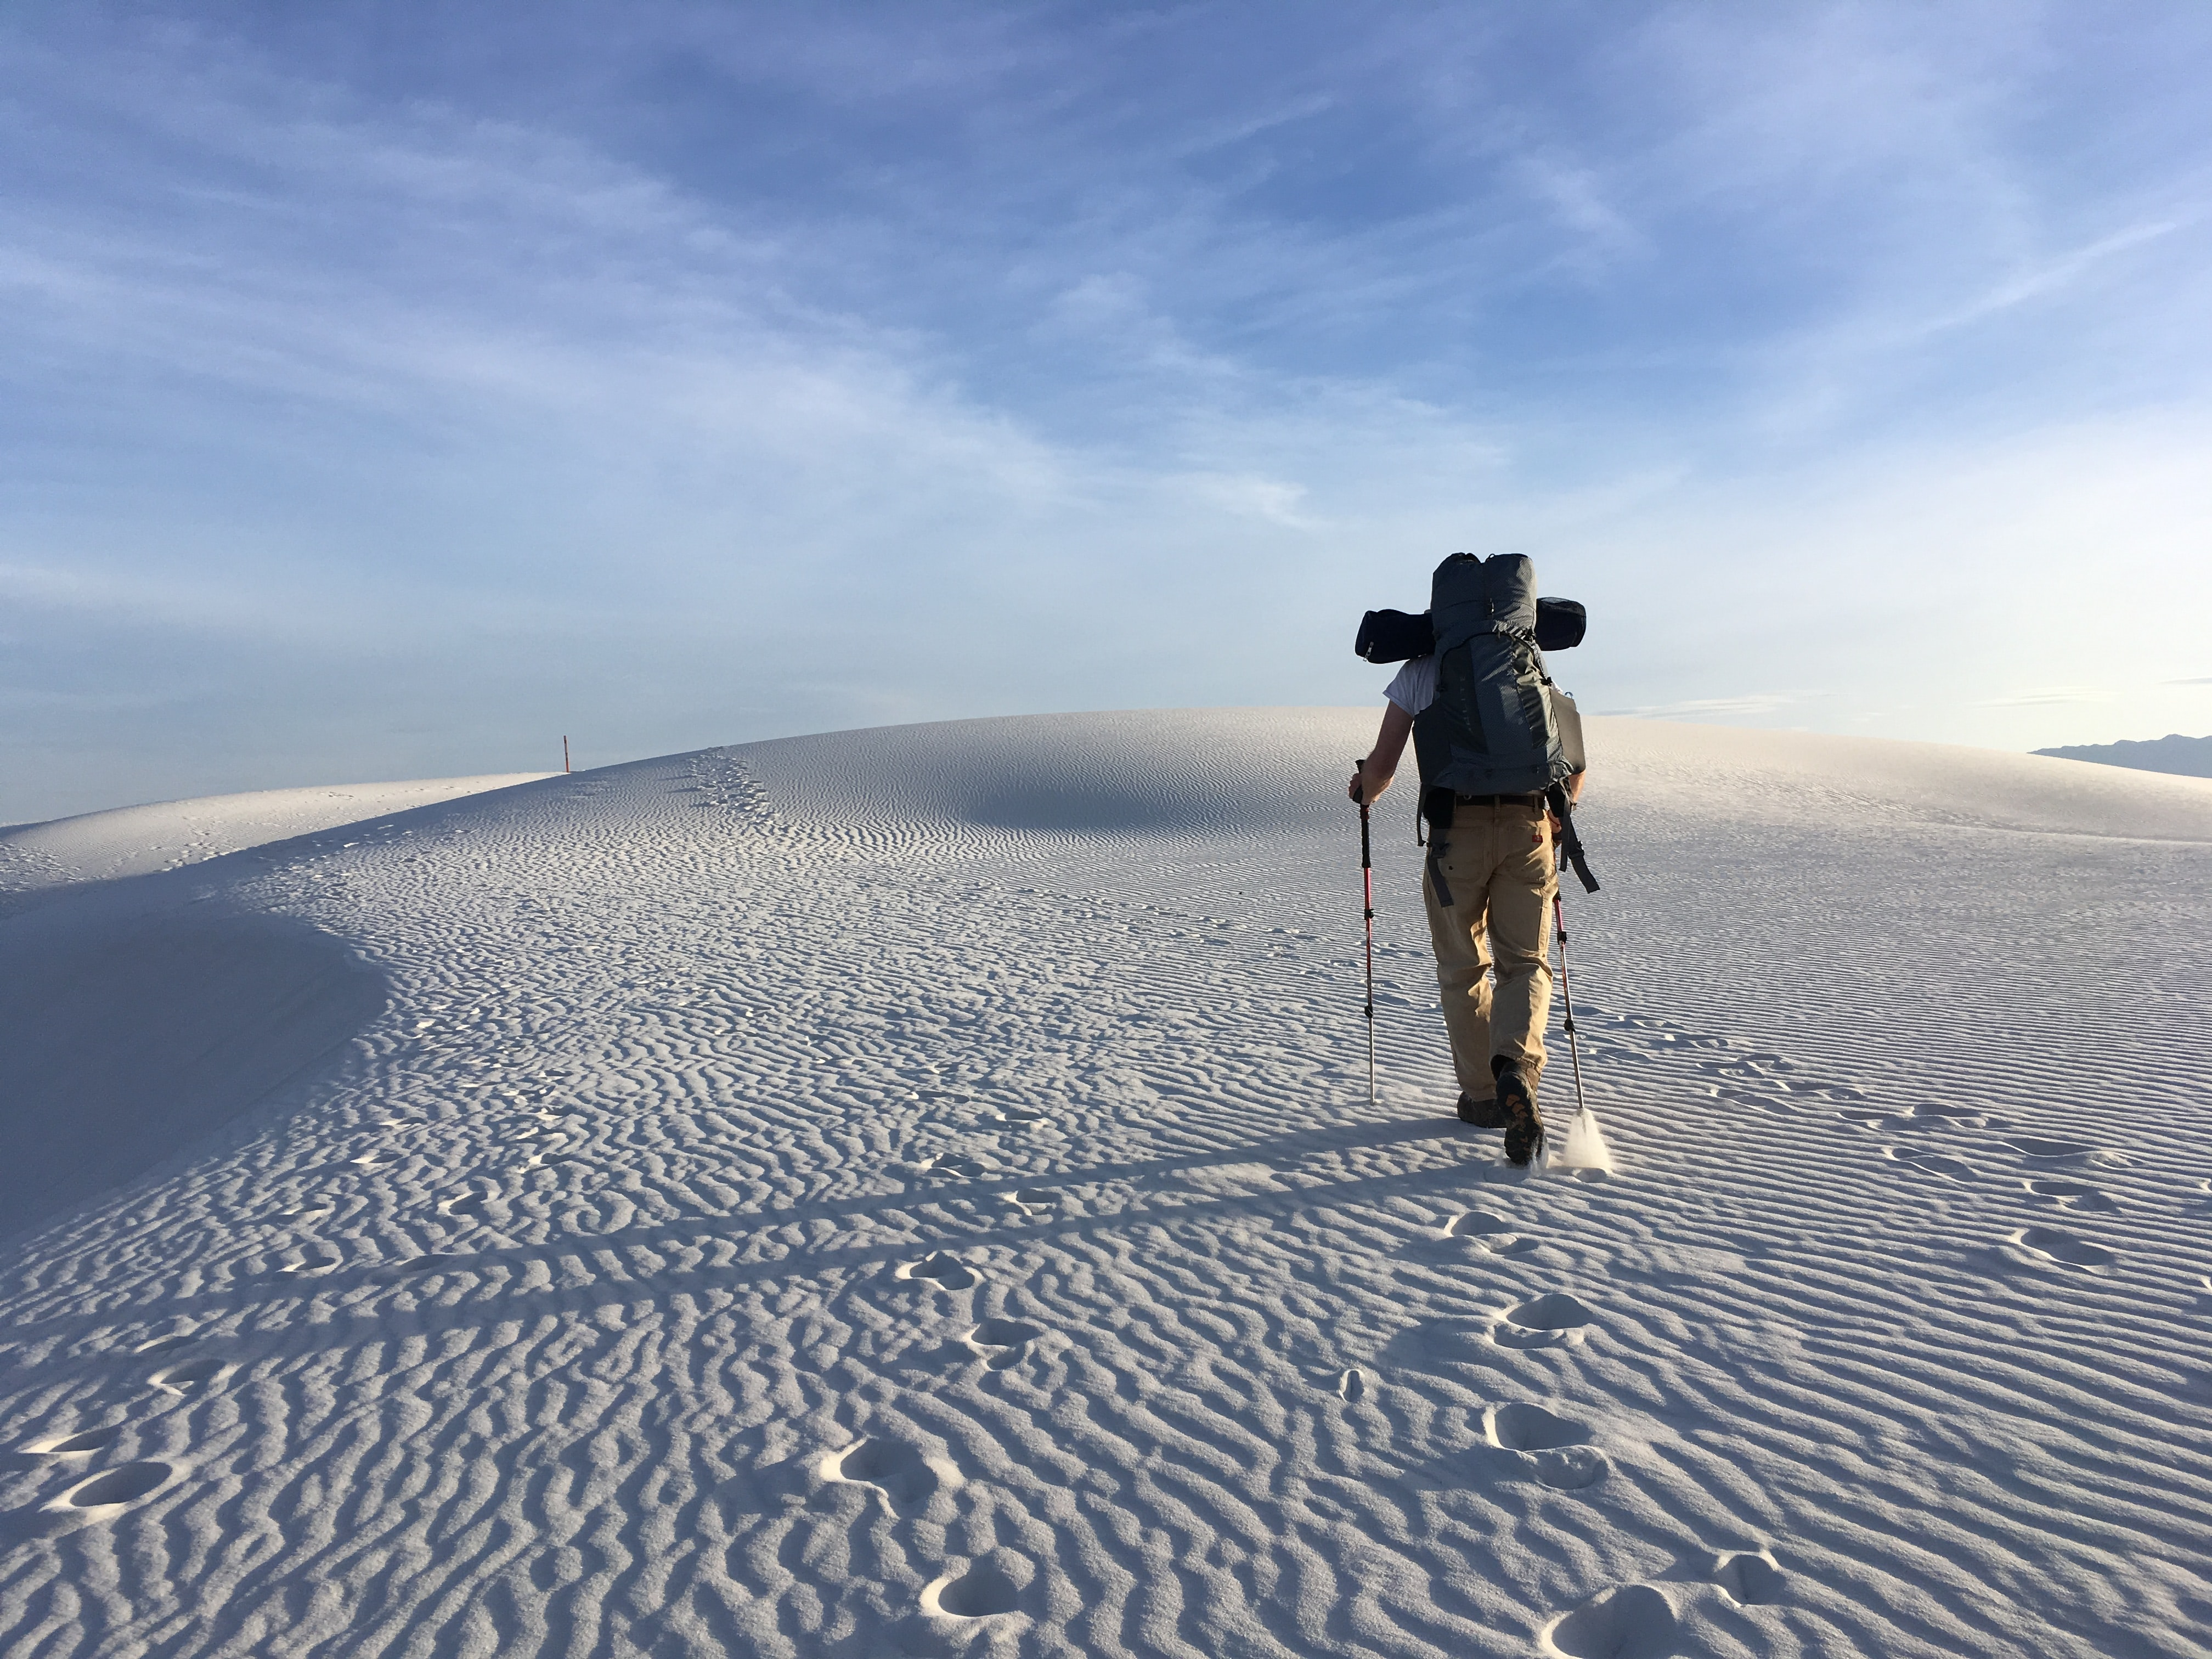 person hiking on sand dunes under white skies during daytime